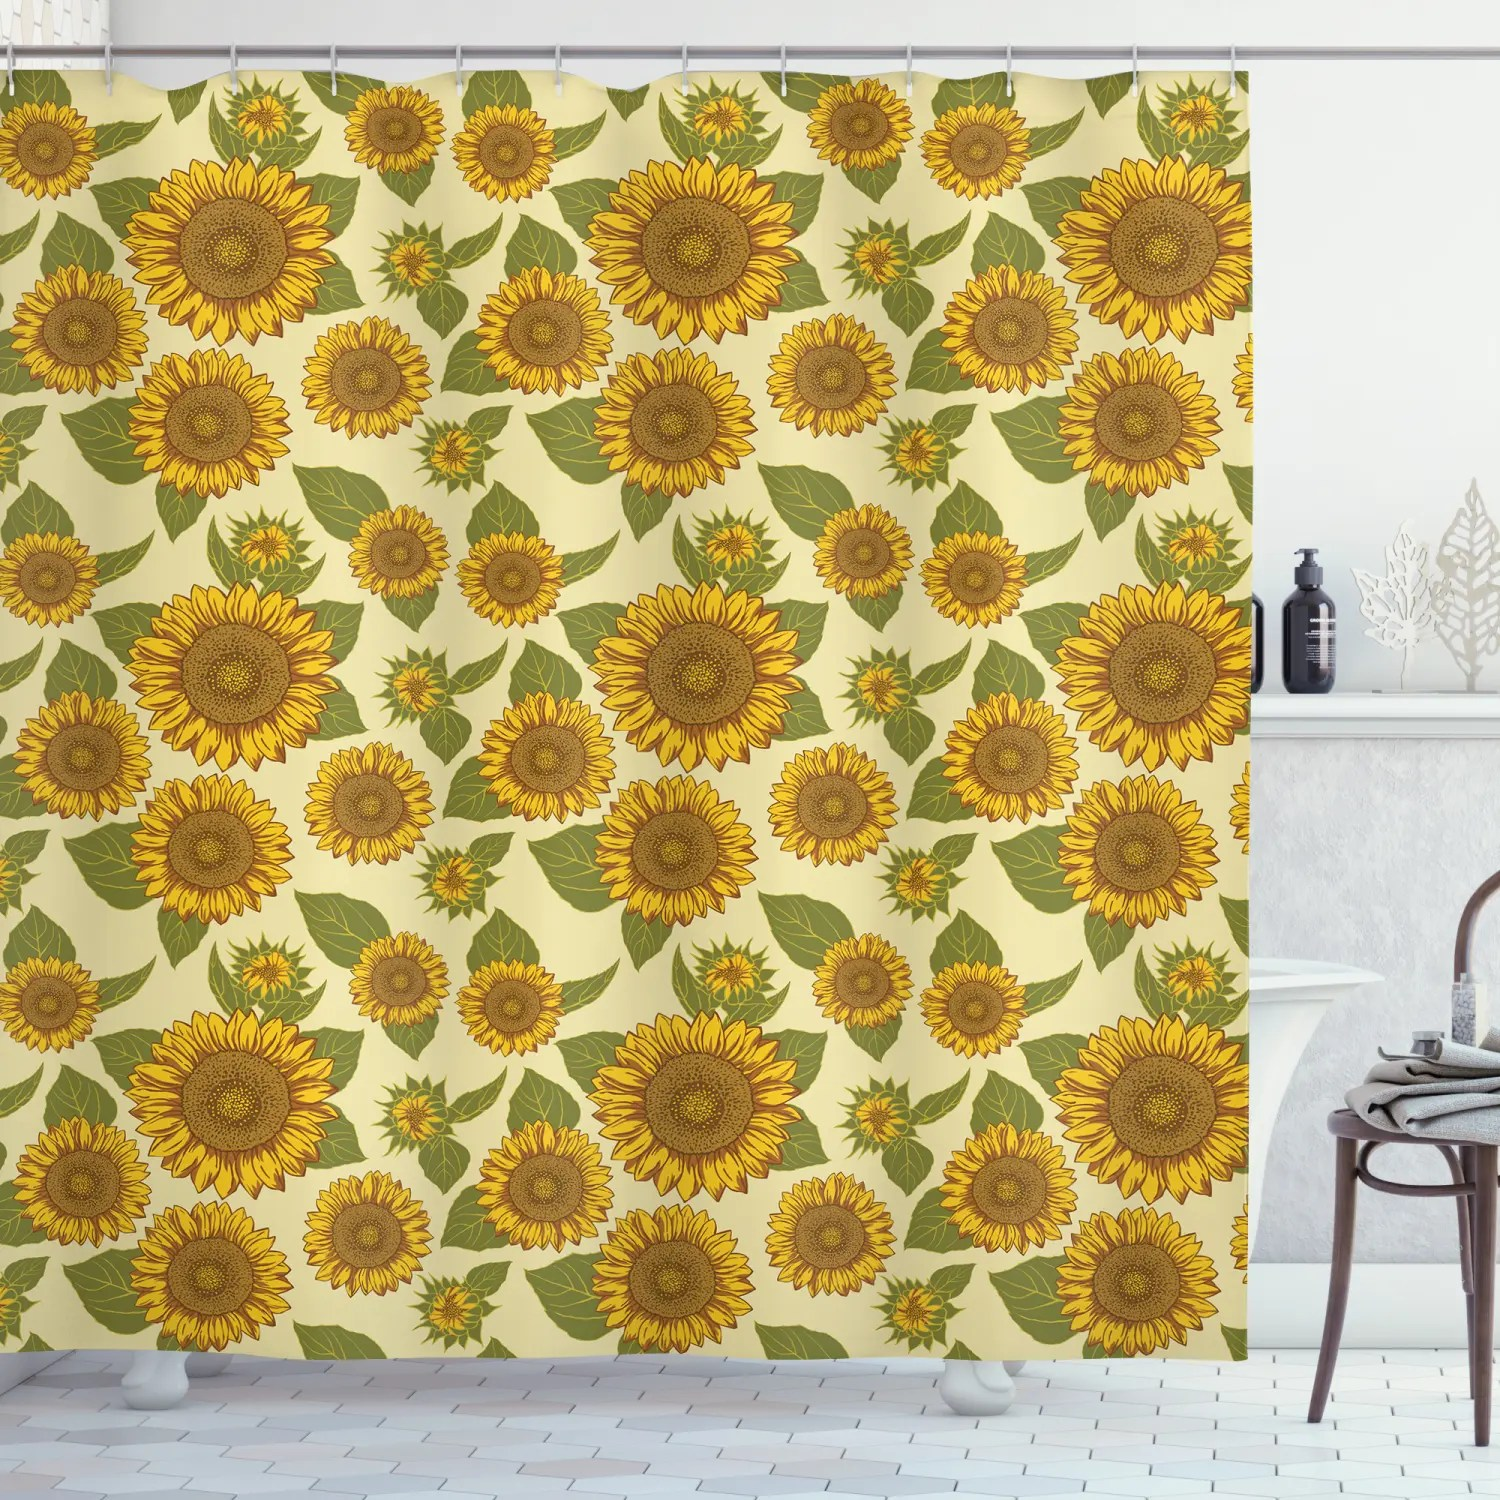 details about pattern sunflowers country style vintage home decor print shower curtain set